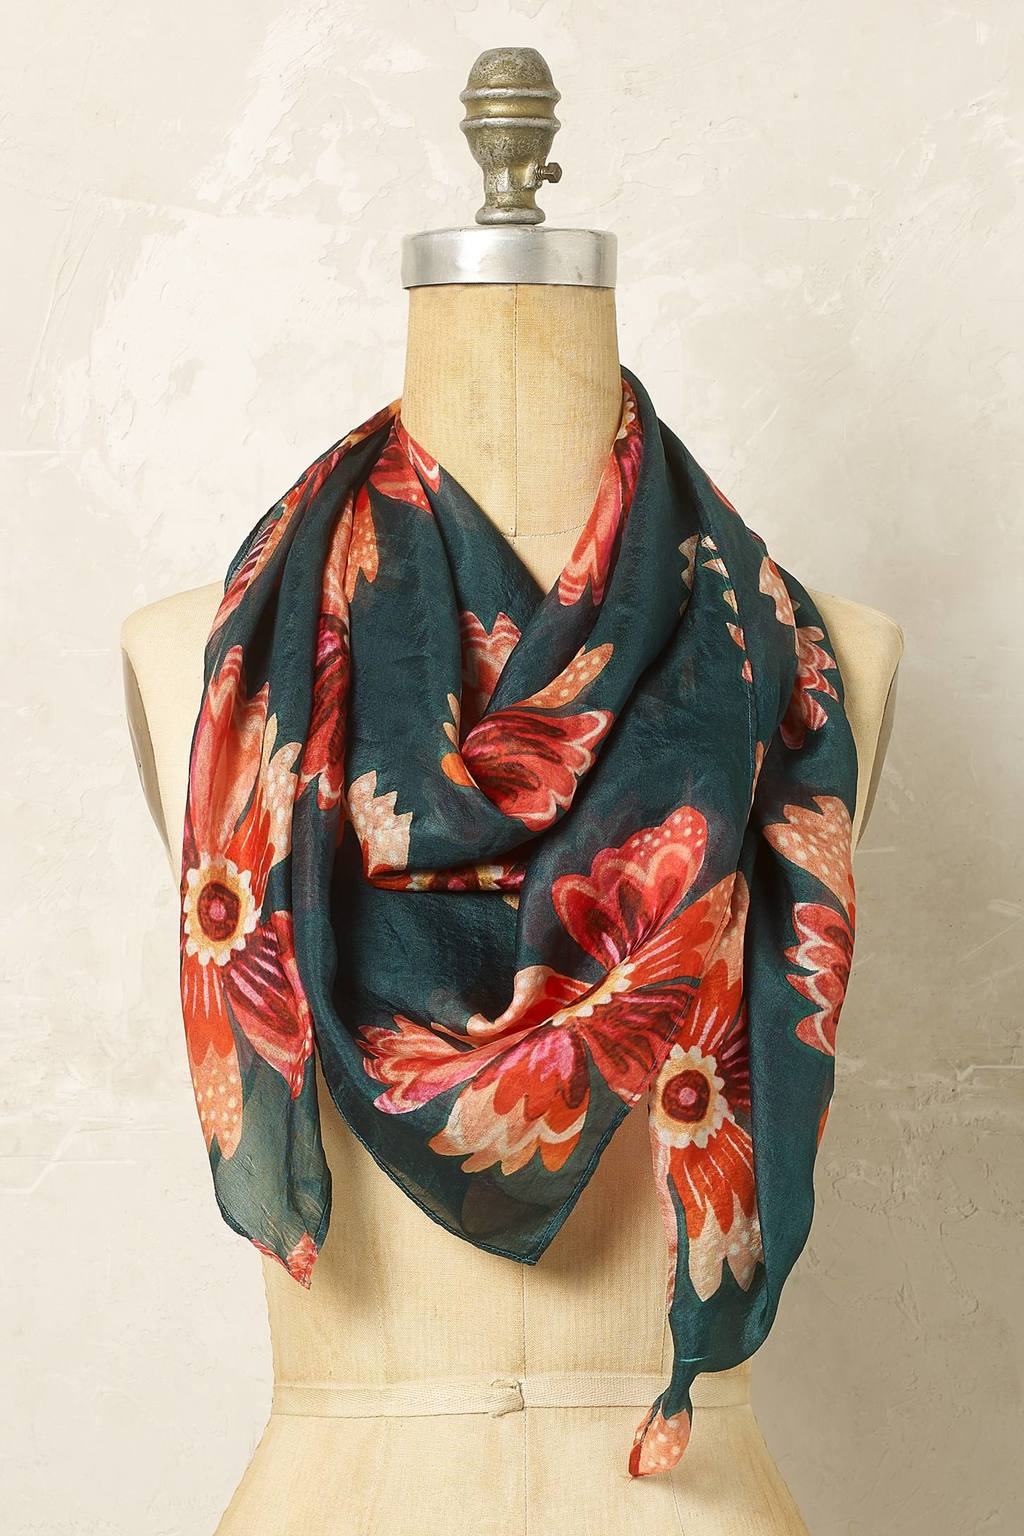 Dahlia Silk Floral Scarf - predominant colour: dark green; secondary colour: coral; occasions: casual; type of pattern: standard; style: regular; size: standard; material: fabric; pattern: florals; multicoloured: multicoloured; season: a/w 2016; wardrobe: highlight